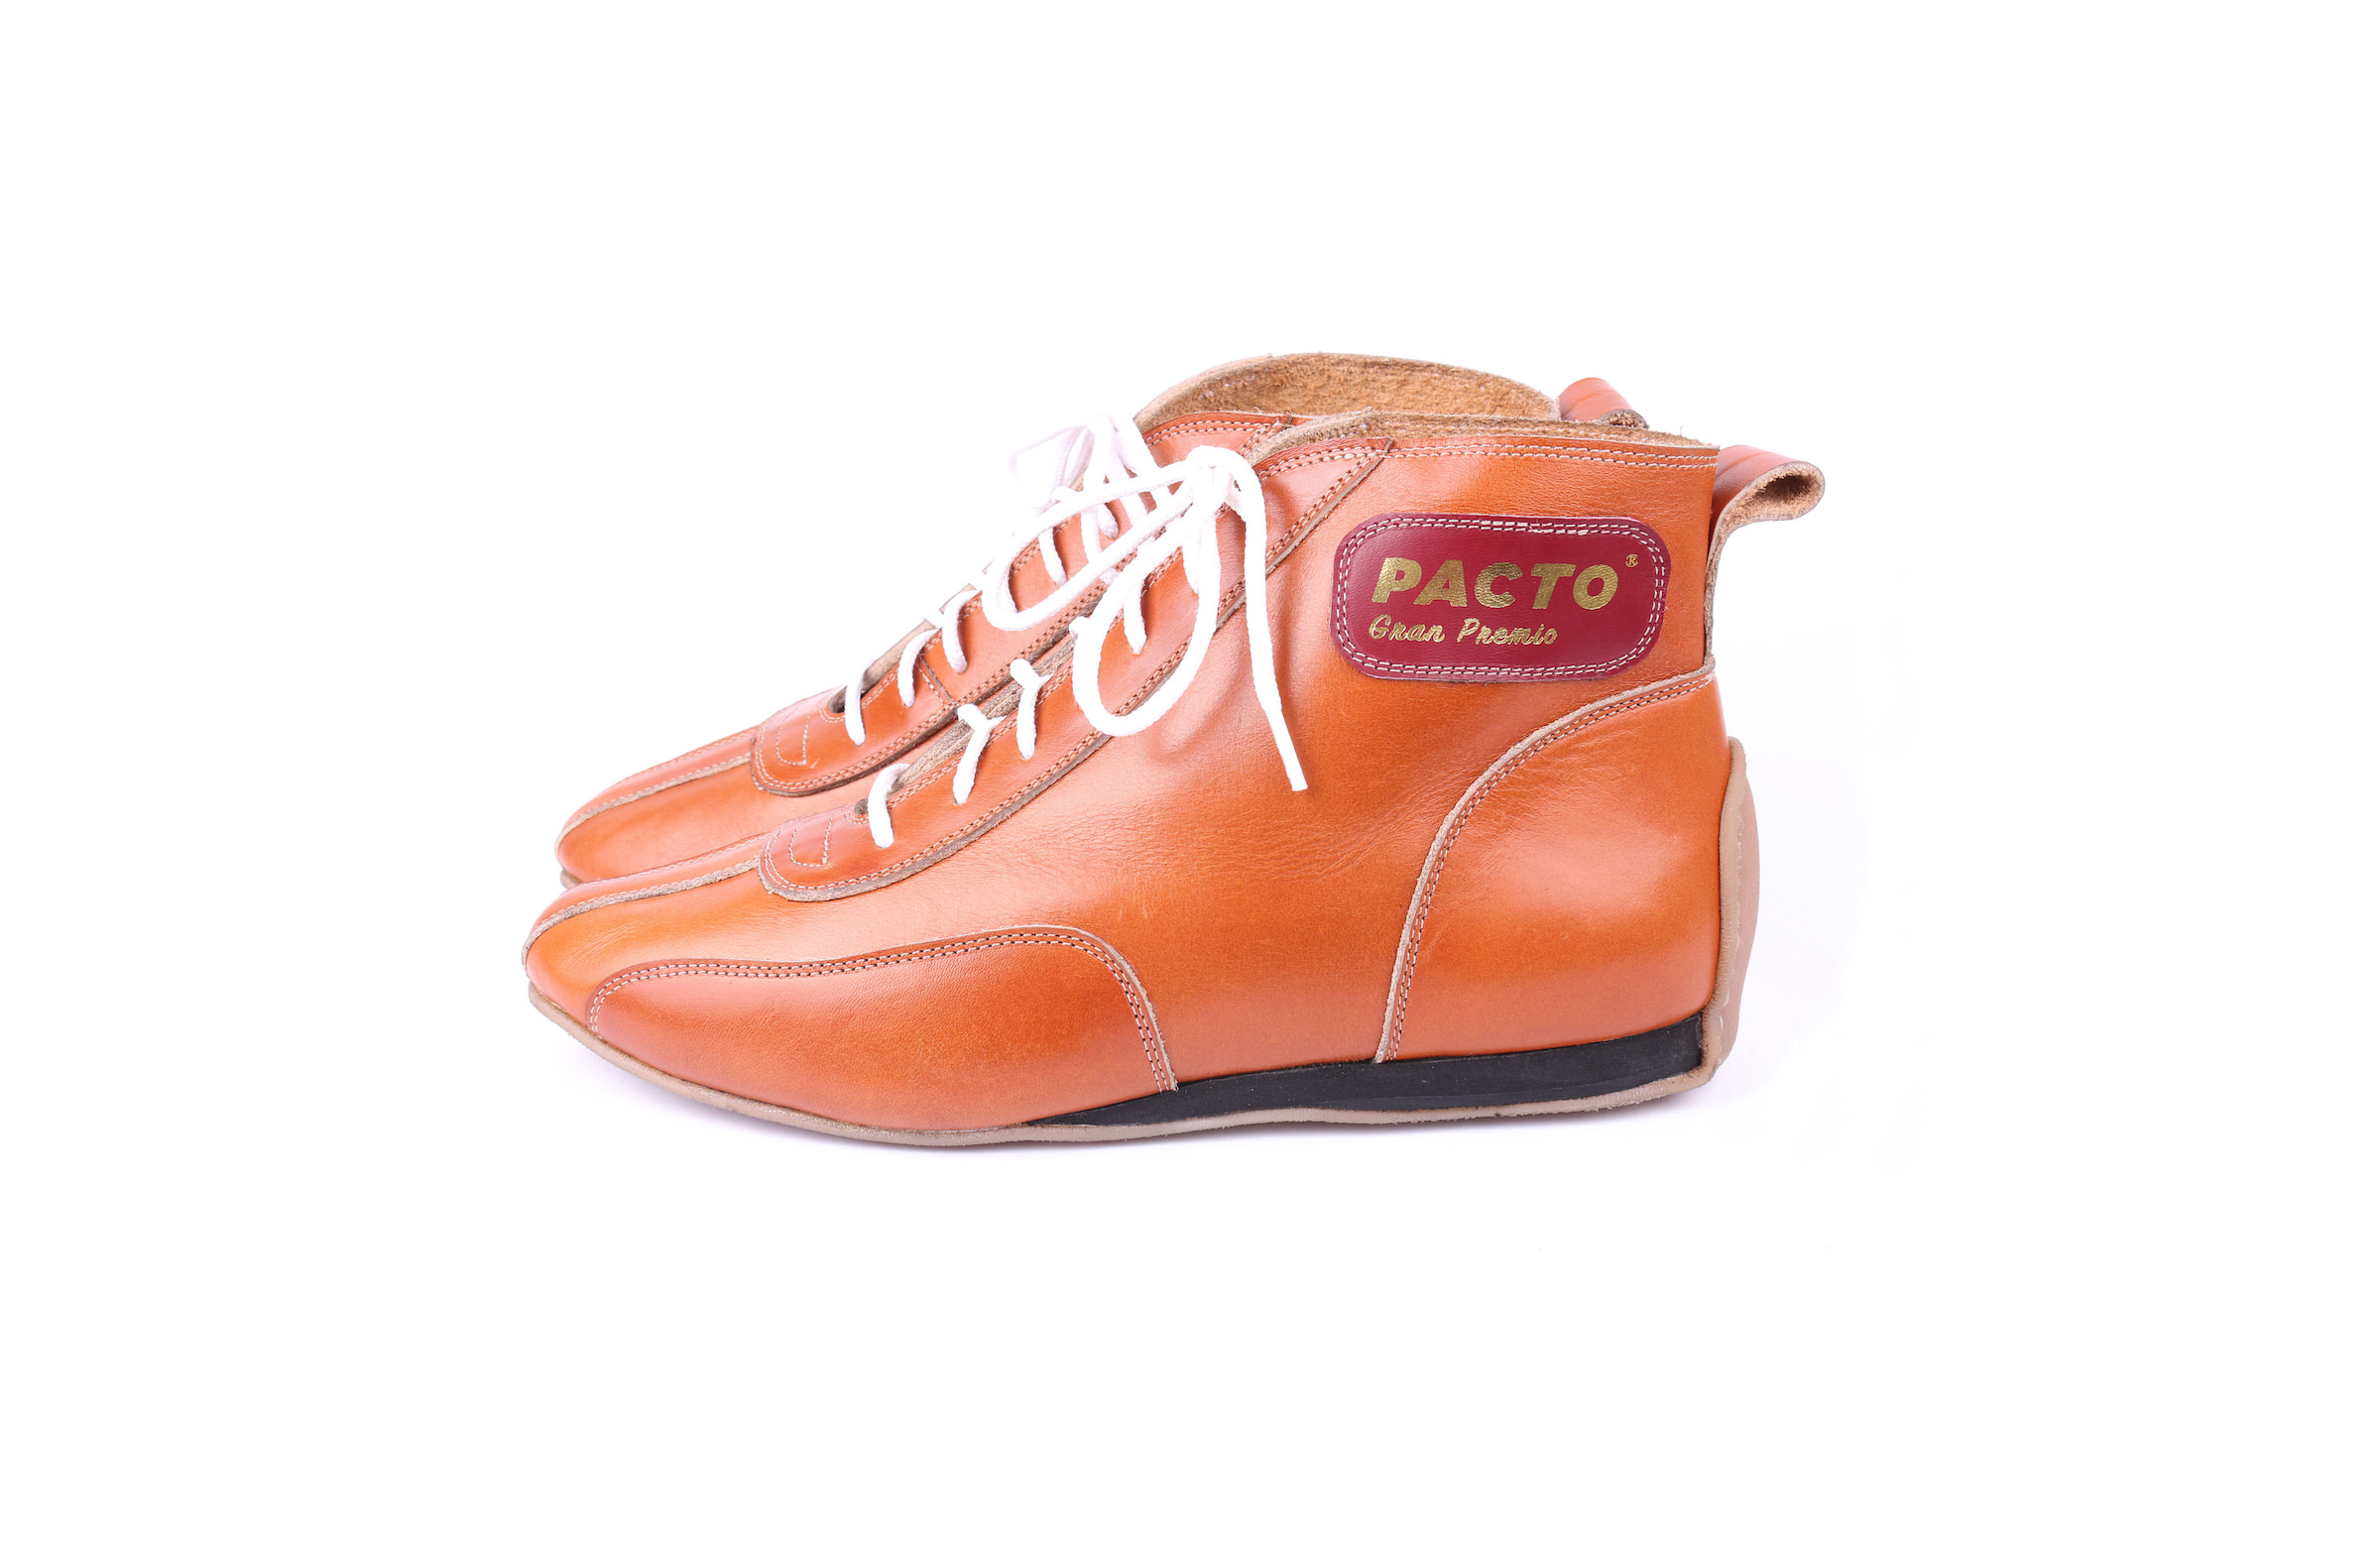 Pacto Racing Boots